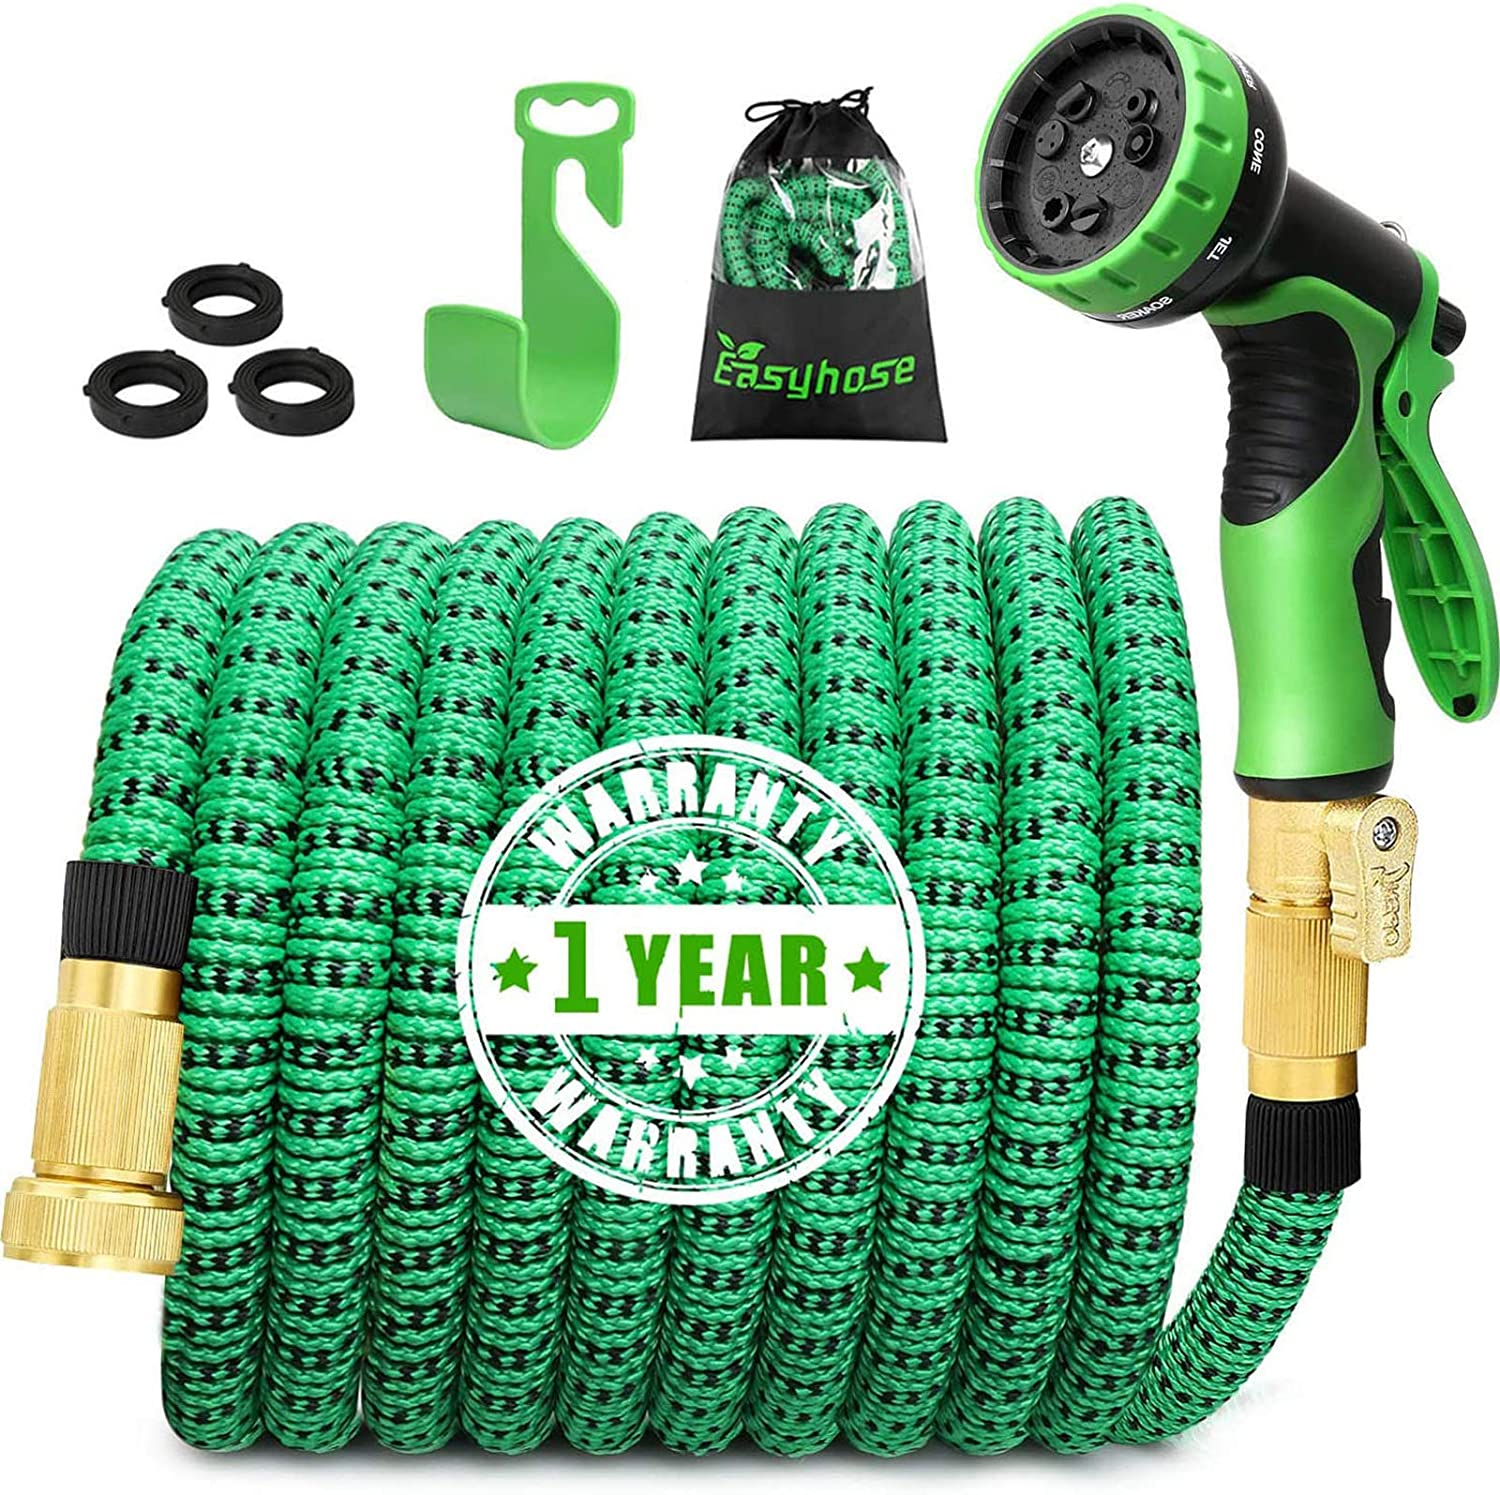 EASYHOSE Garden Hose 25ft Water Expandable yard for Max 44% Limited time trial price OFF